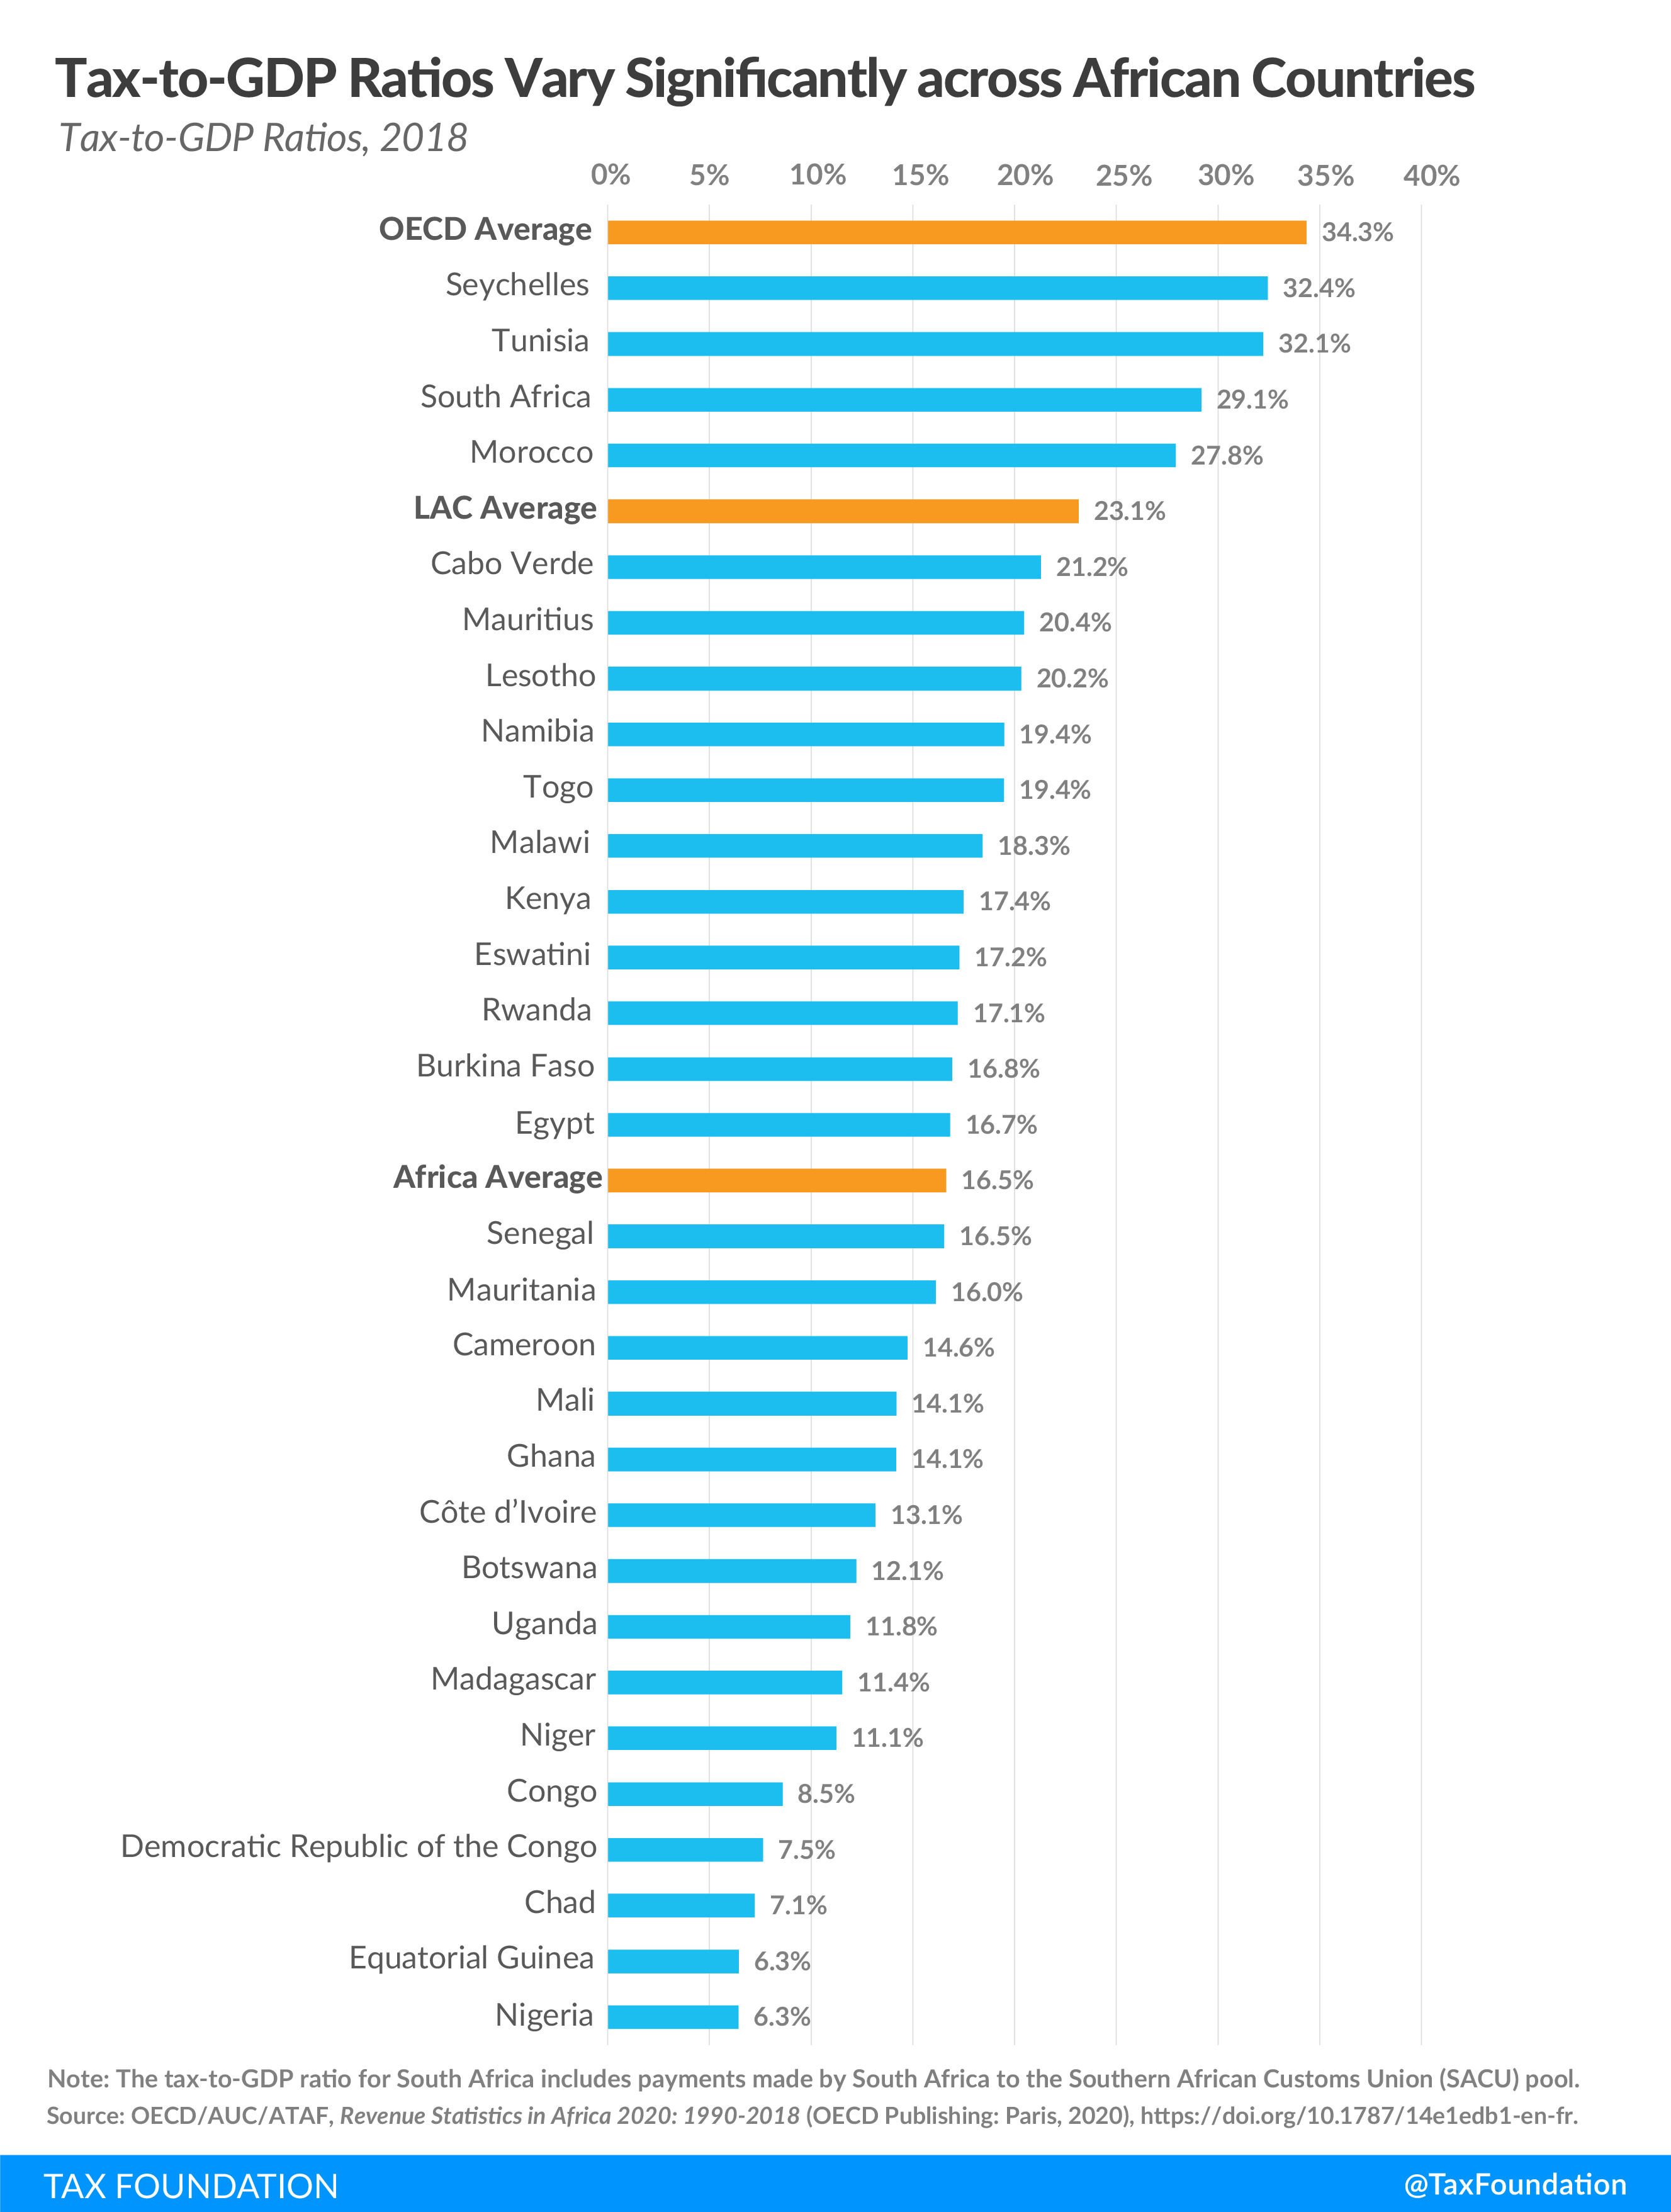 OECD report Africa tax revenue, tax-to-gdp ratios vary significantly across African countries. revenue statistics in Africa